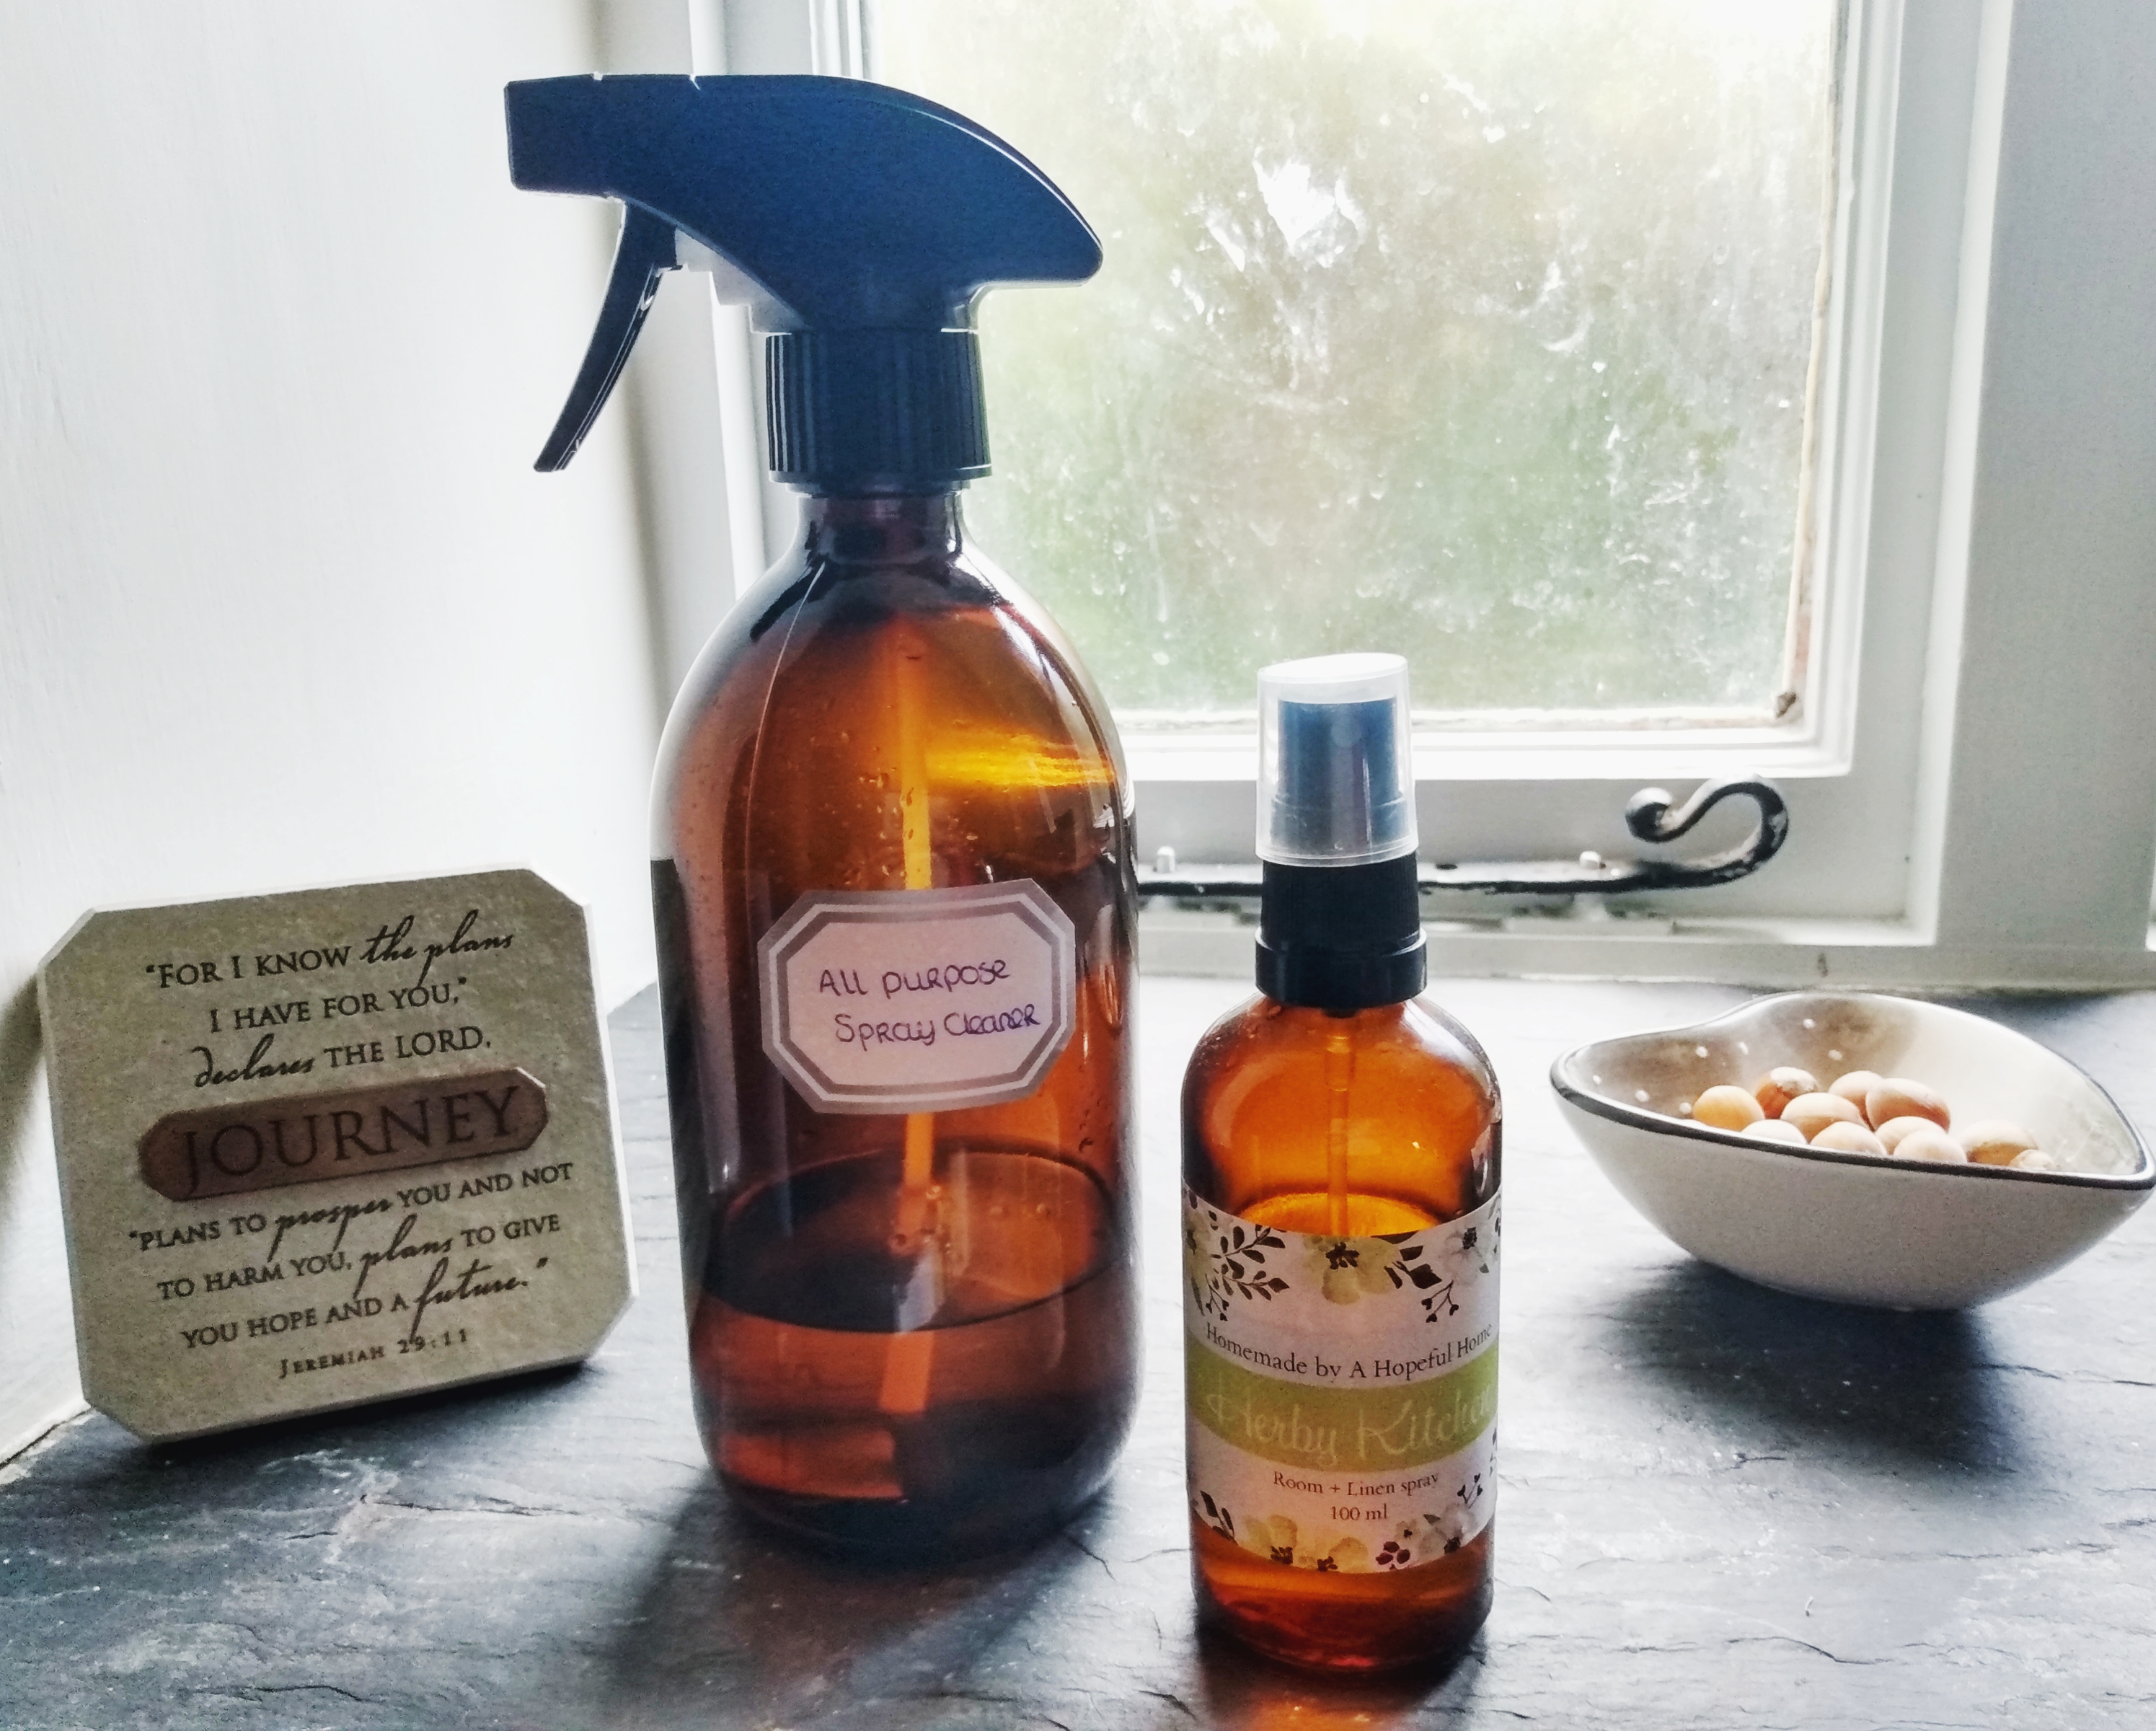 The natural all purpose spray cleaner. DIY Natural Witch Hazel Makeup Remover by a Hopeful Home.